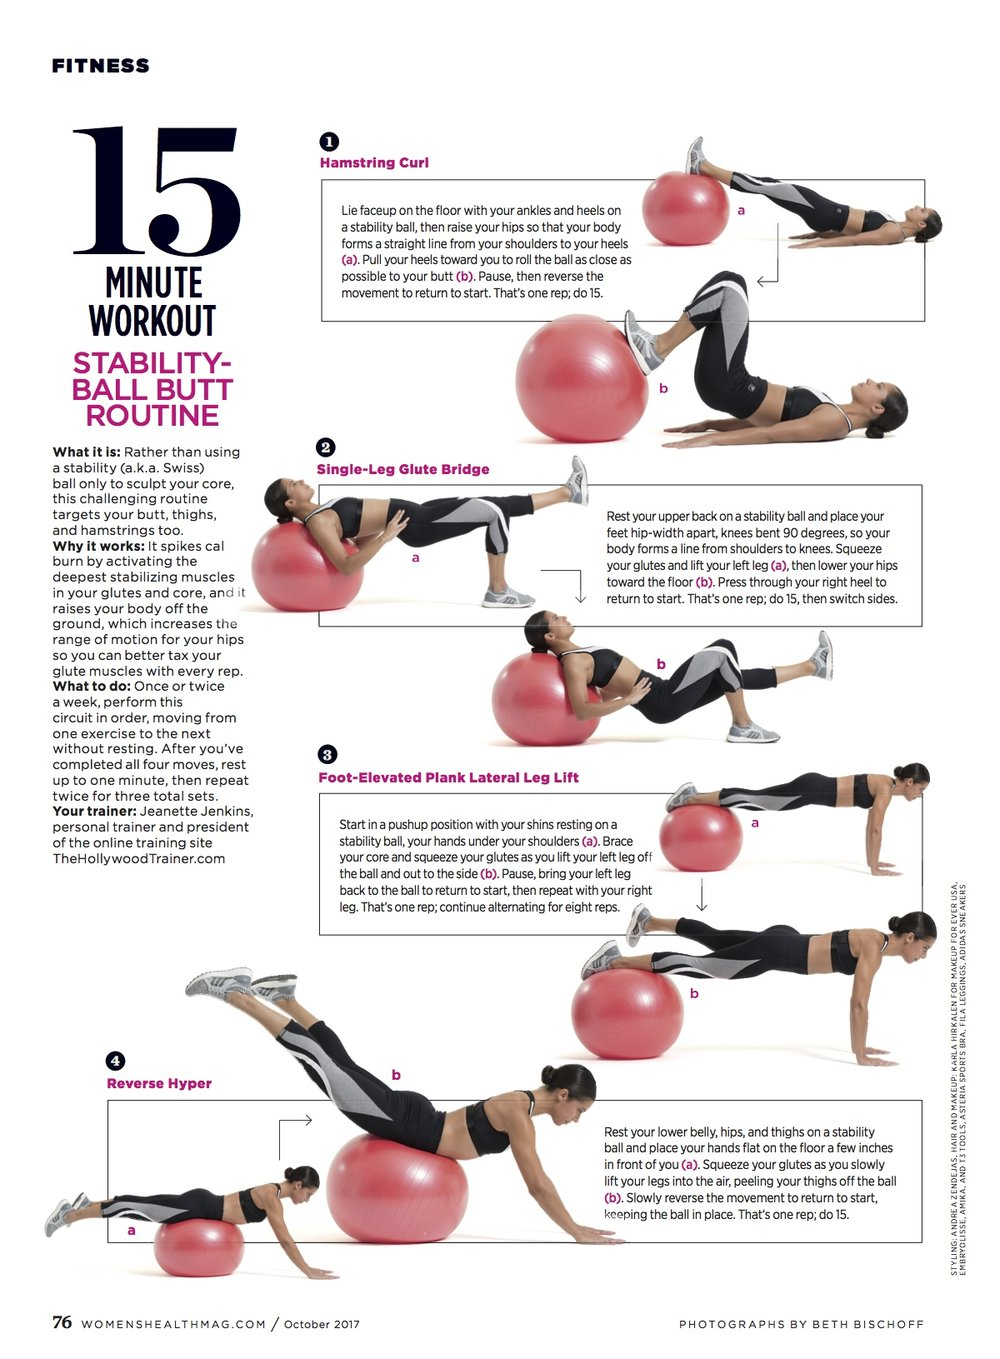 WOMEN'S HEALTH MAGAZINE